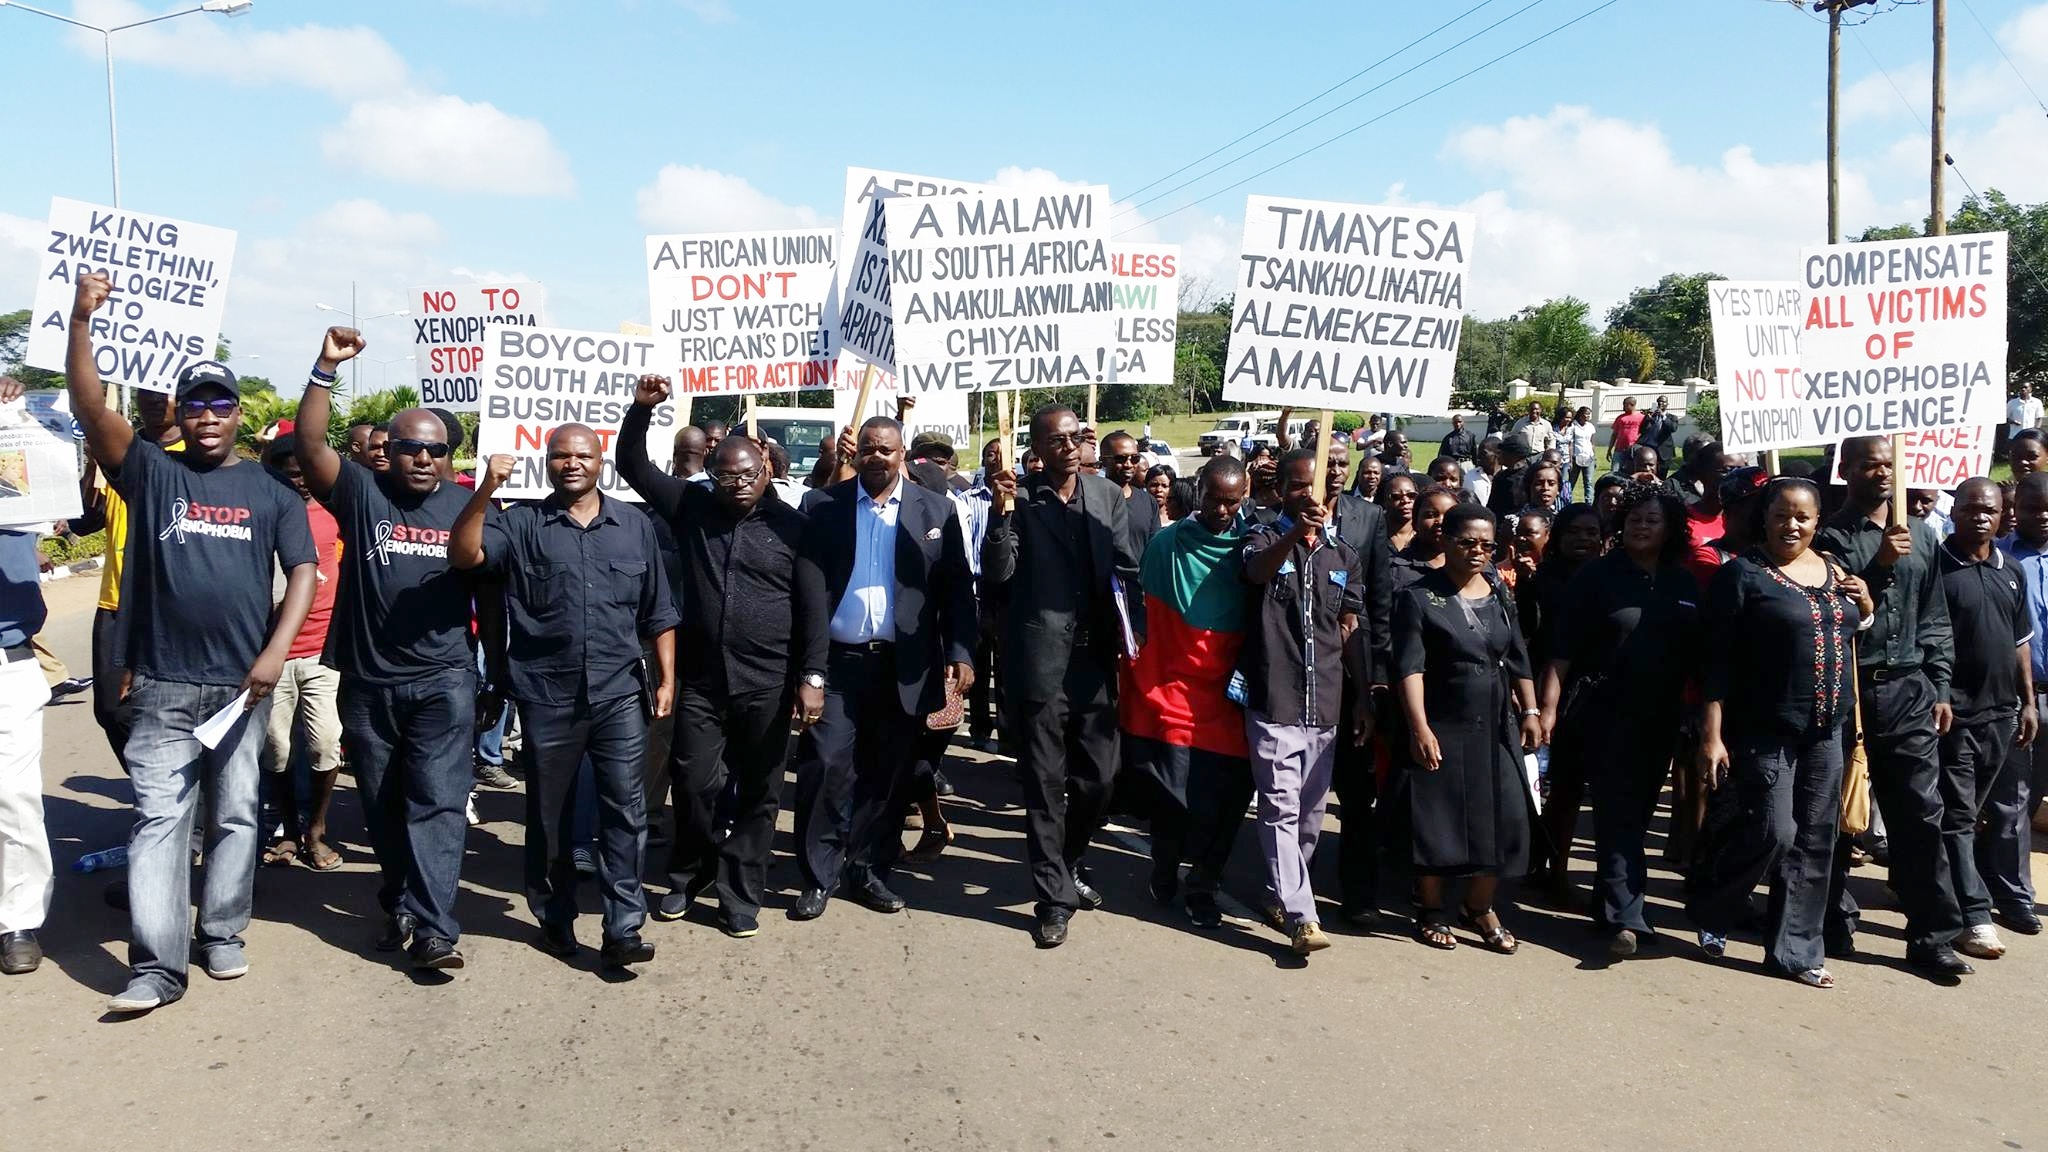 Protest in Malawi against South Africa's Xenophobic Attacks. Phot o - Henry K. Mhango, The AfricaPaper